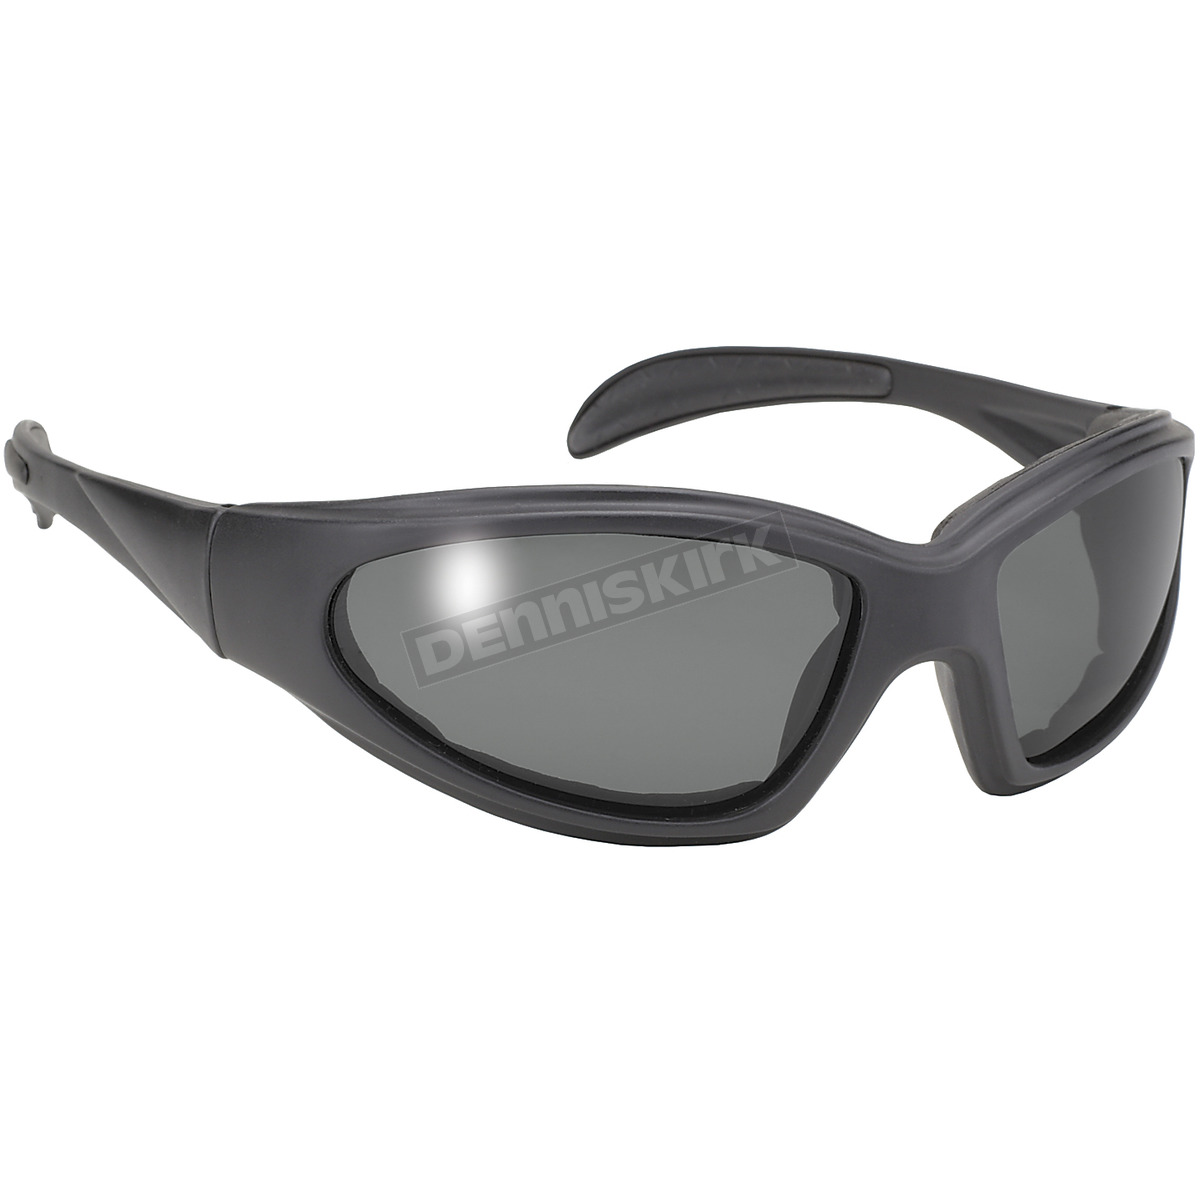 kickstart eyewear black chopper sunglasses w polarized